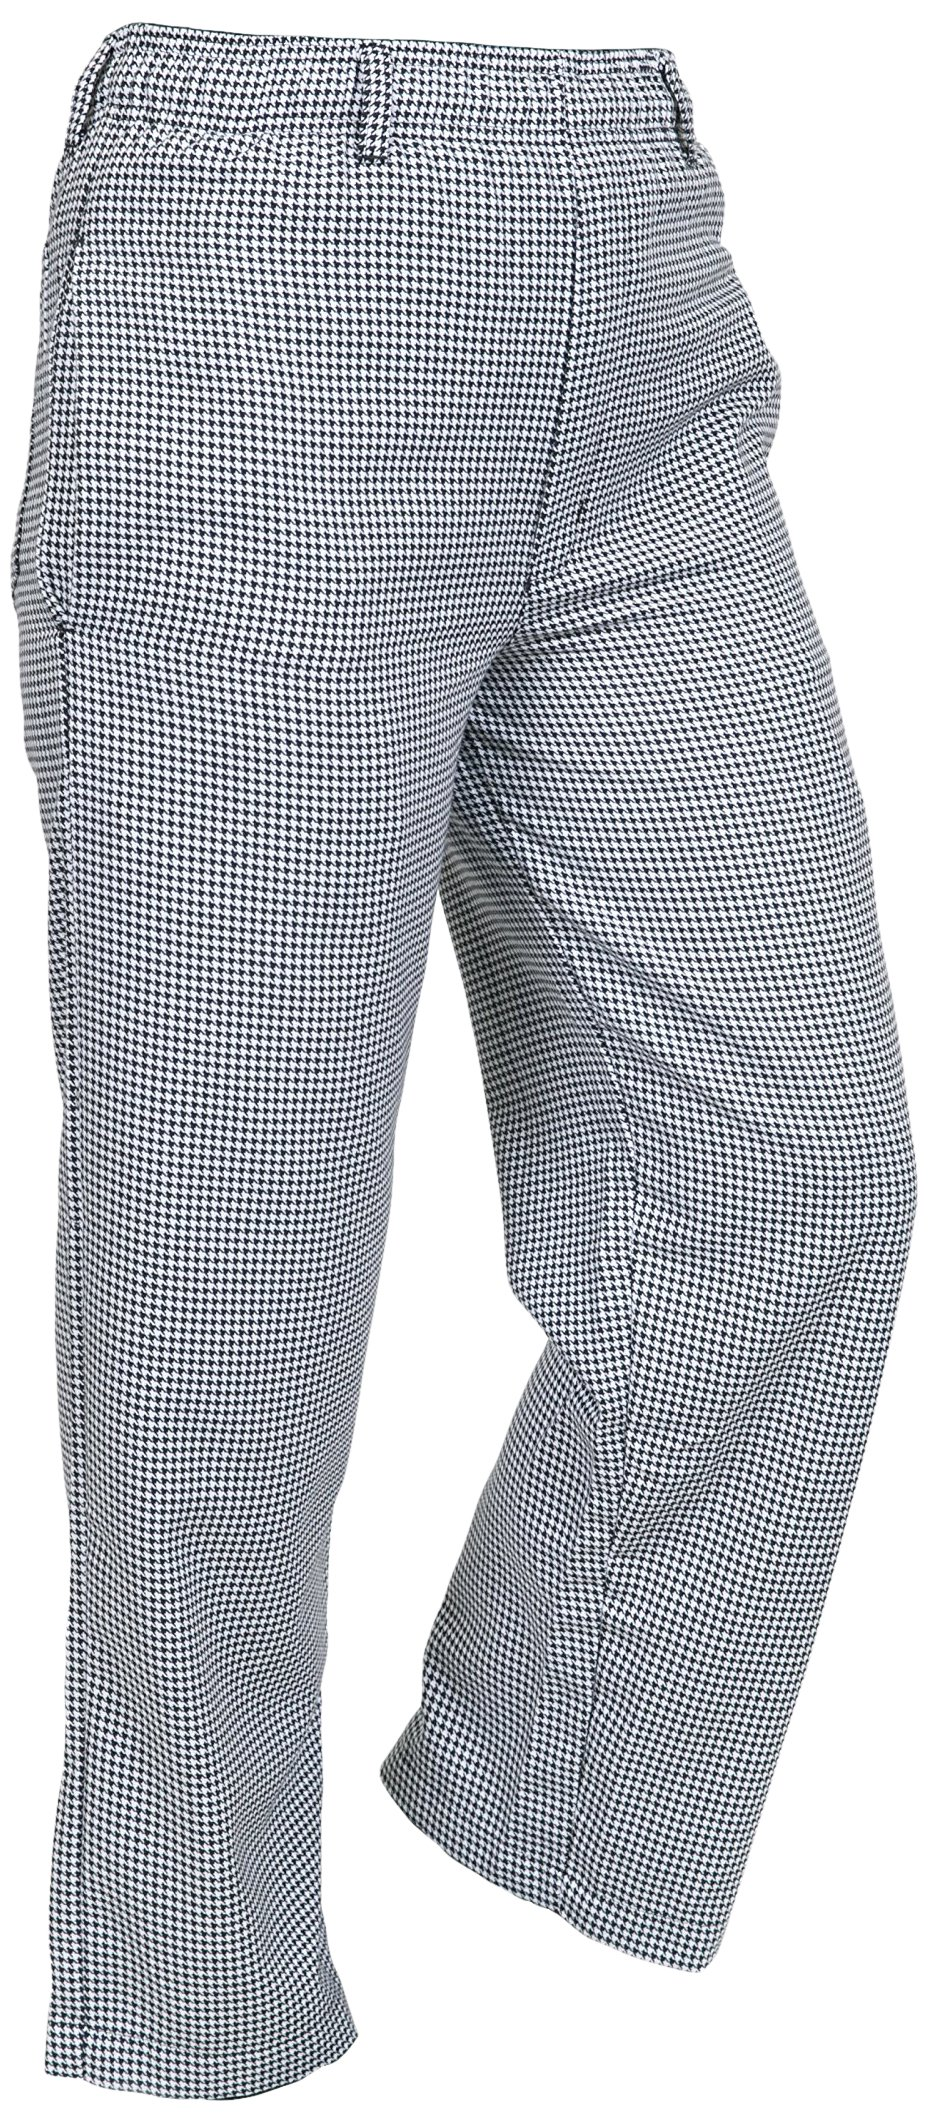 Mercer Culinary M61050HT7X Genesis Men's Chef Pant in Hounds Tooth, 7X-Large, Black/White by Mercer Culinary